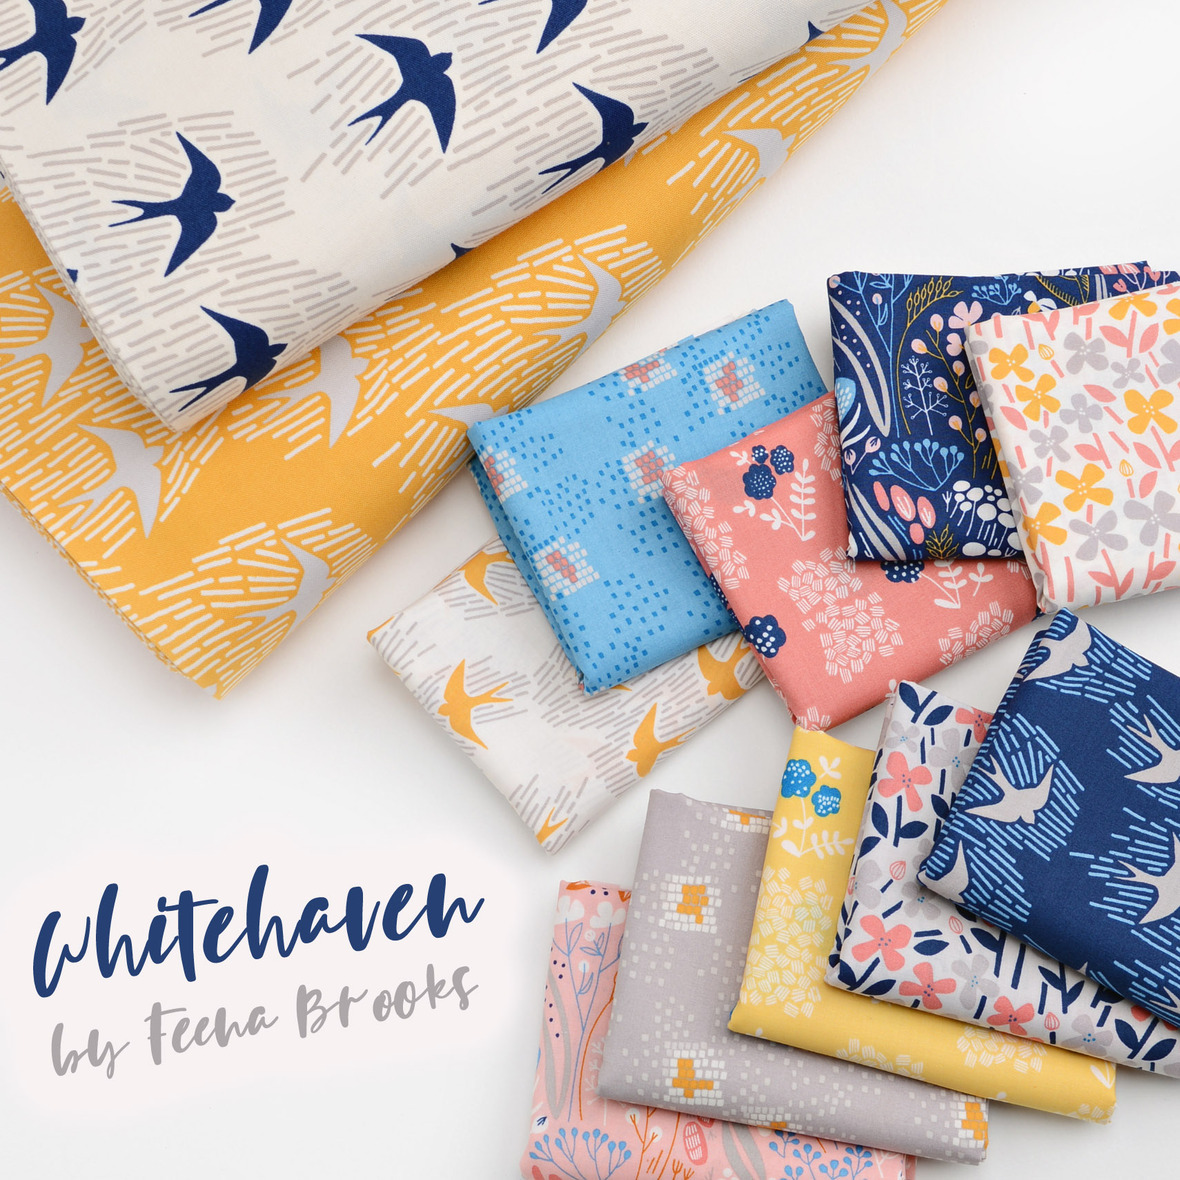 Whitehaven fabric poster